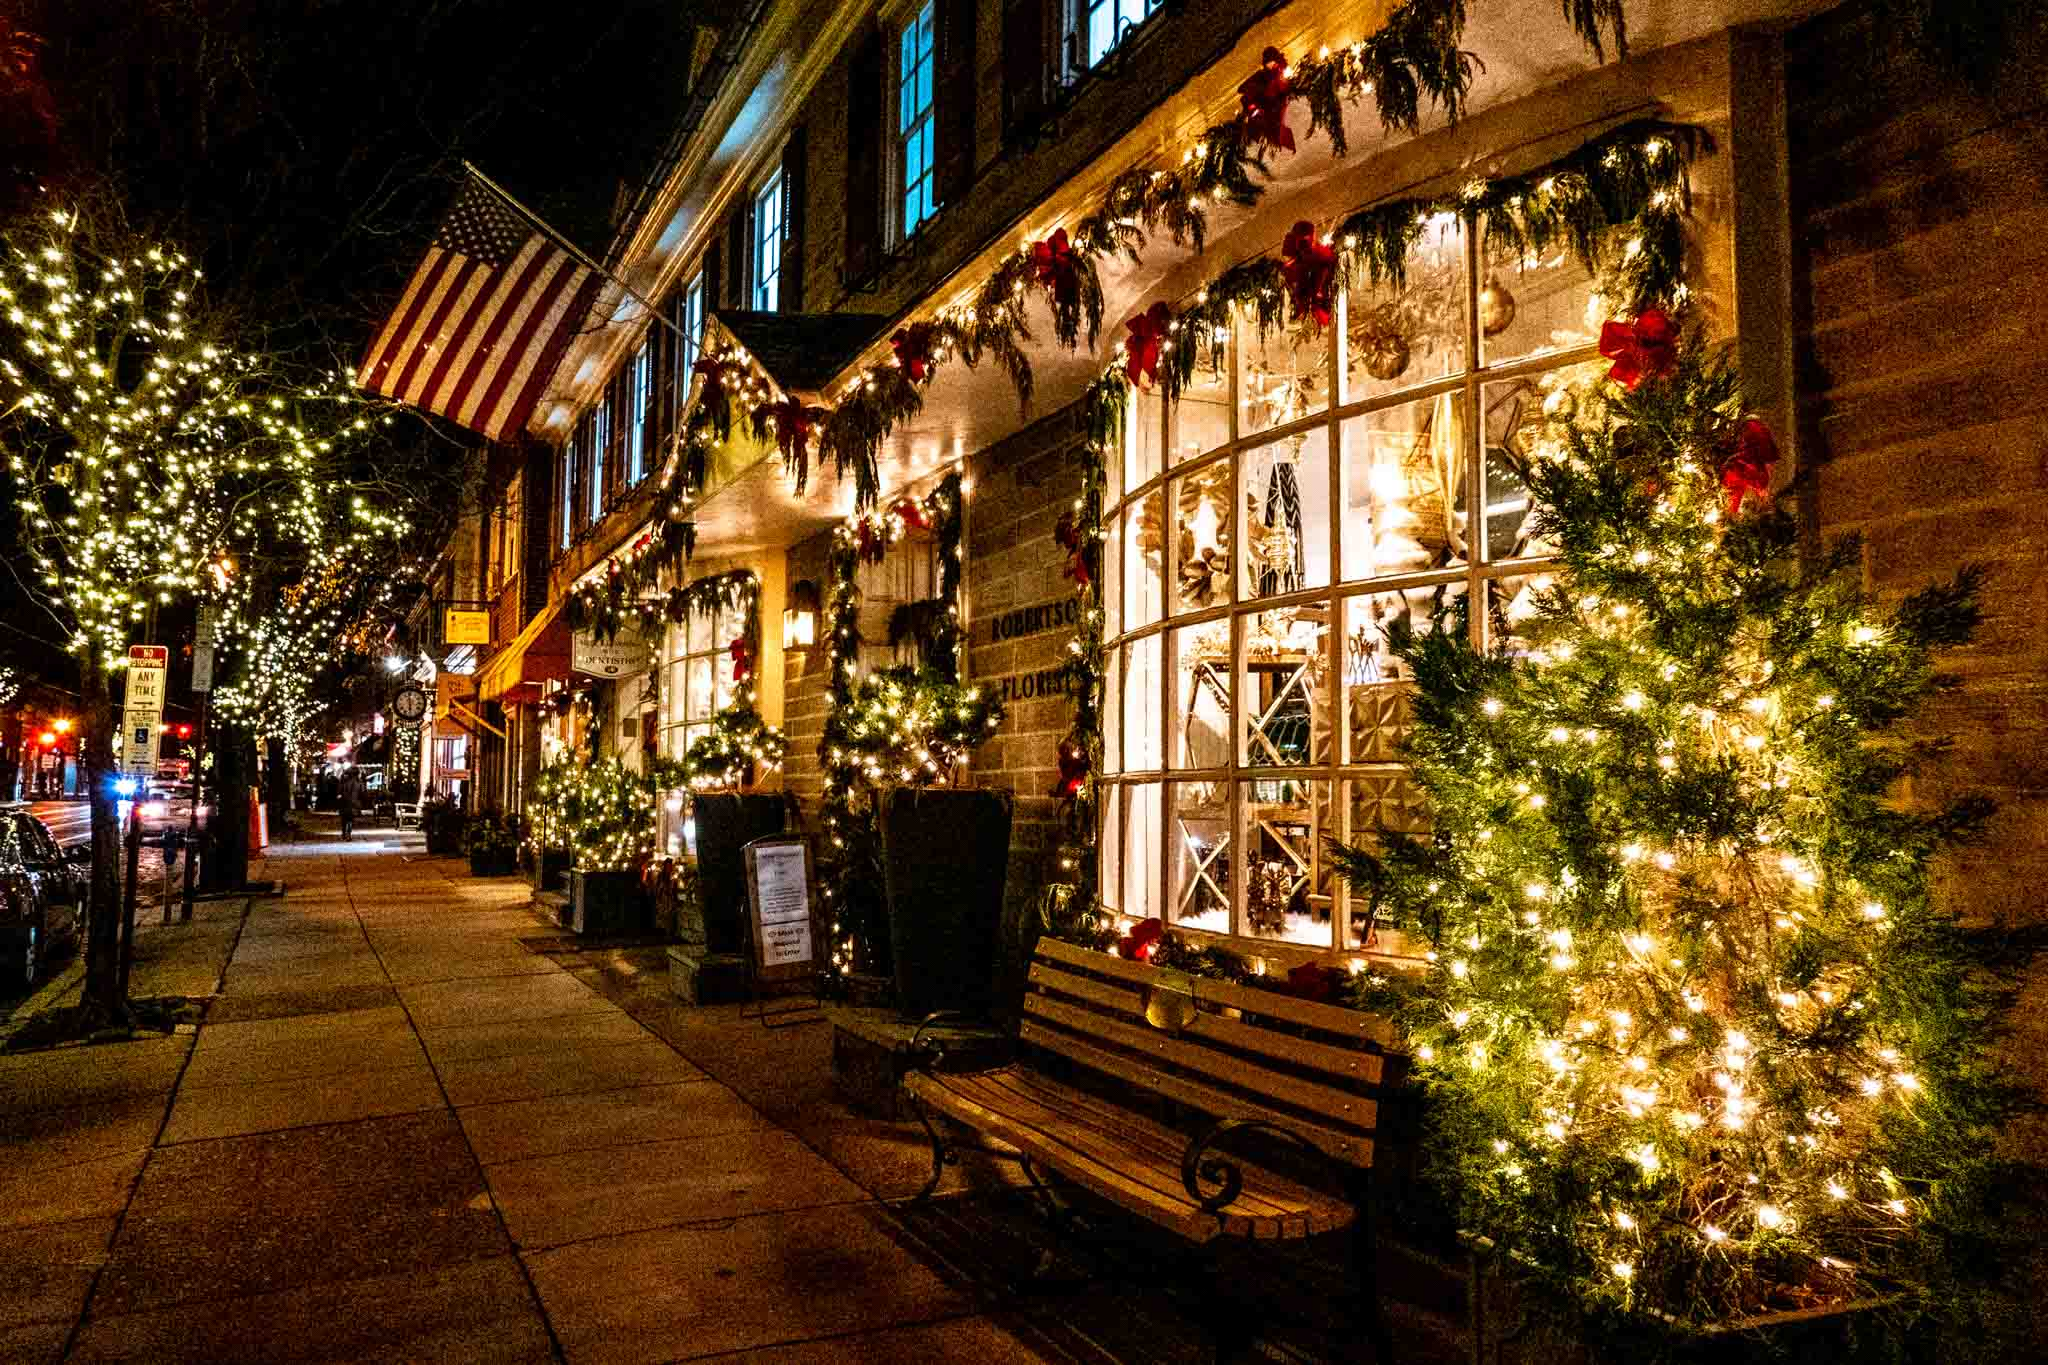 Storefront decorated with holly and white lights